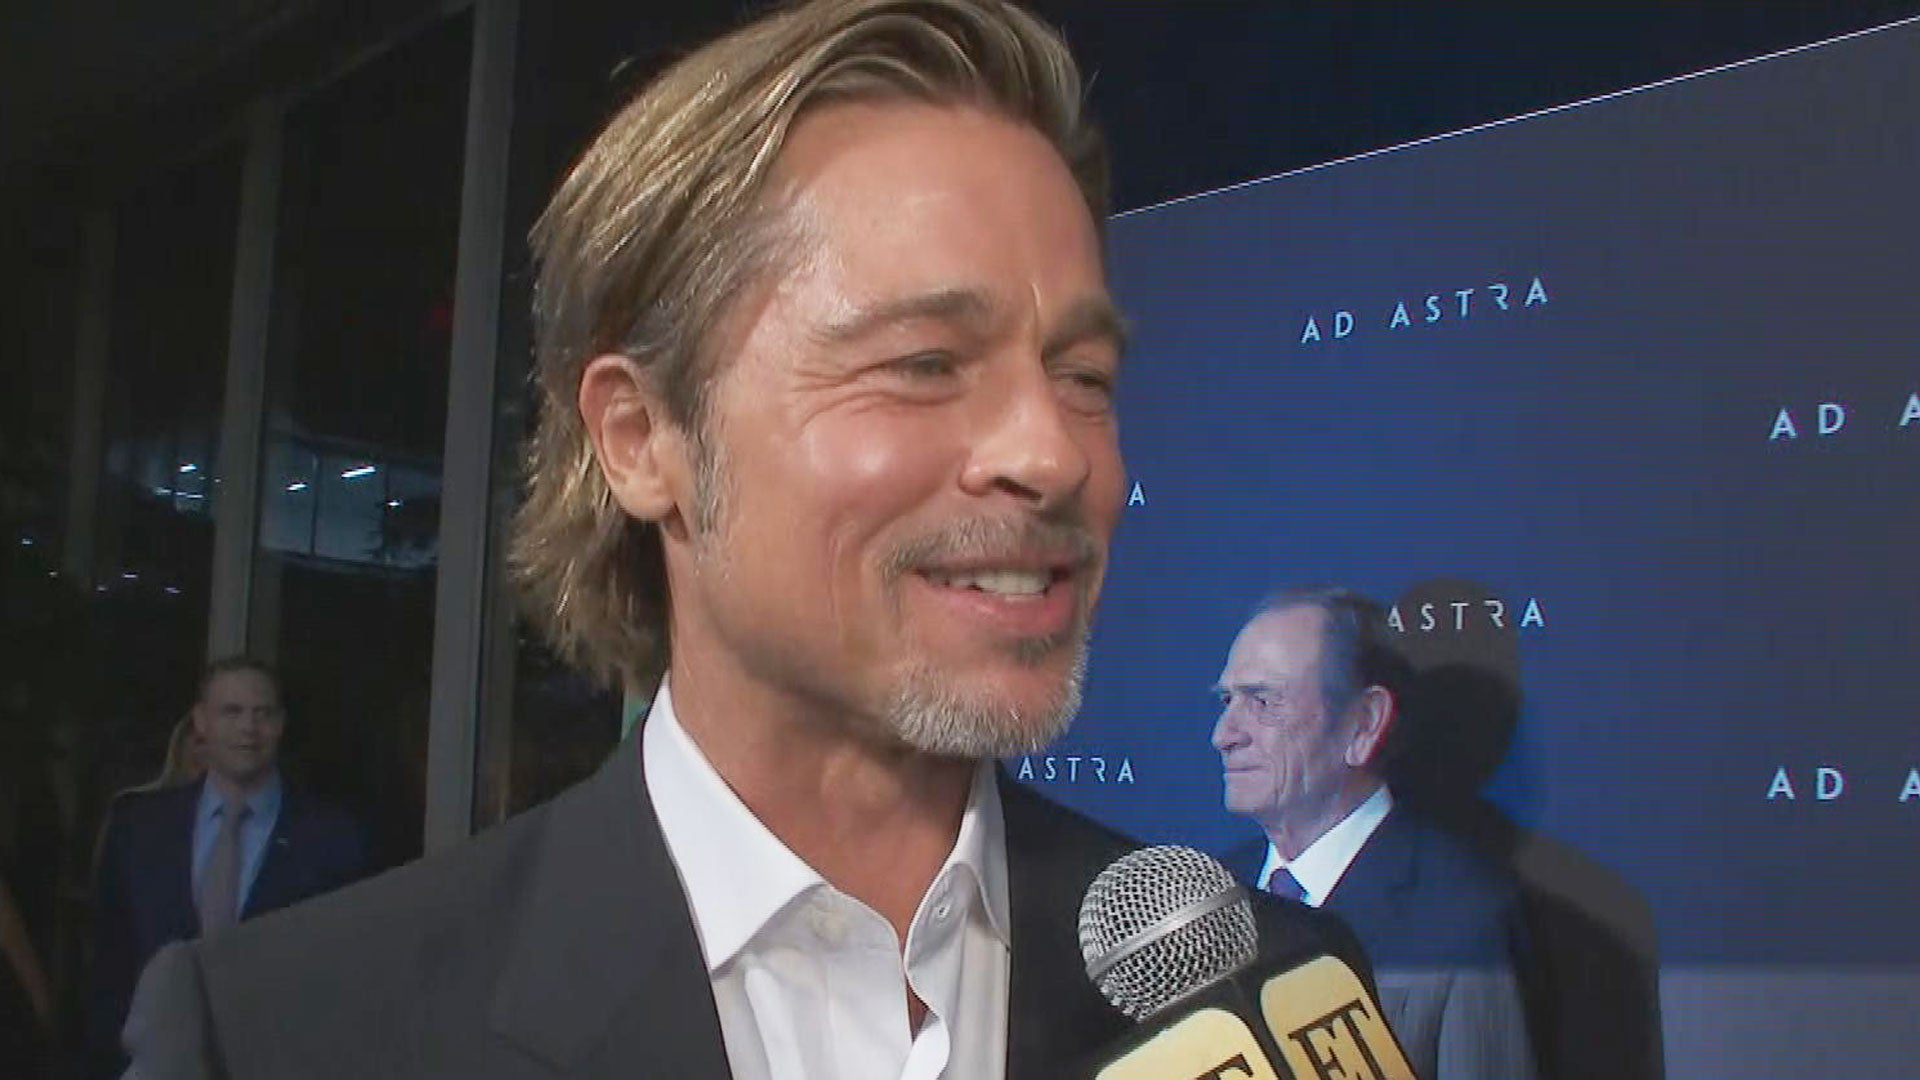 Brad Pitt on Improving George Clooney's 'Gravity' Performance With His New Space Flick 'Ad Astra' (Exclusive)